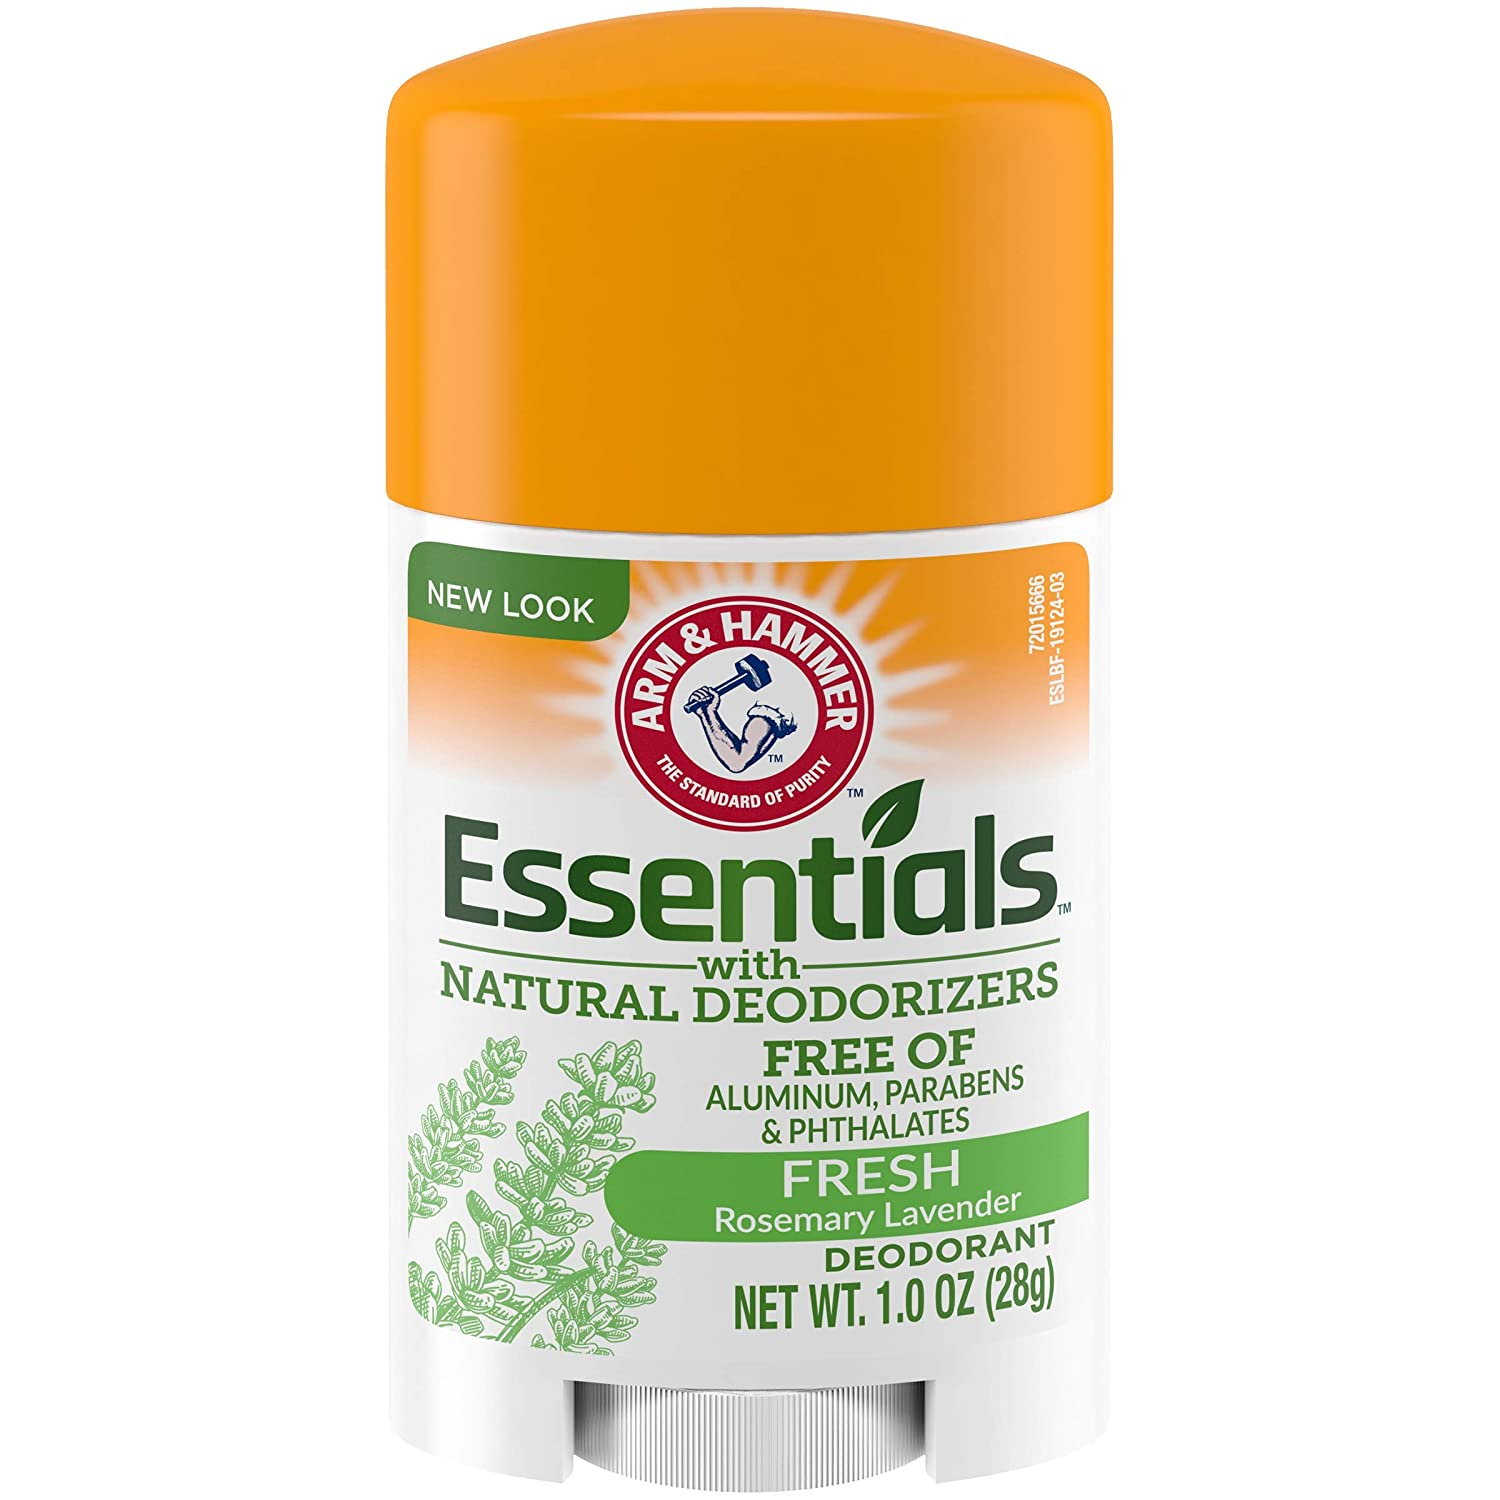 Arm & Hammer Essentials Deodorant, Fresh, 1 Oz